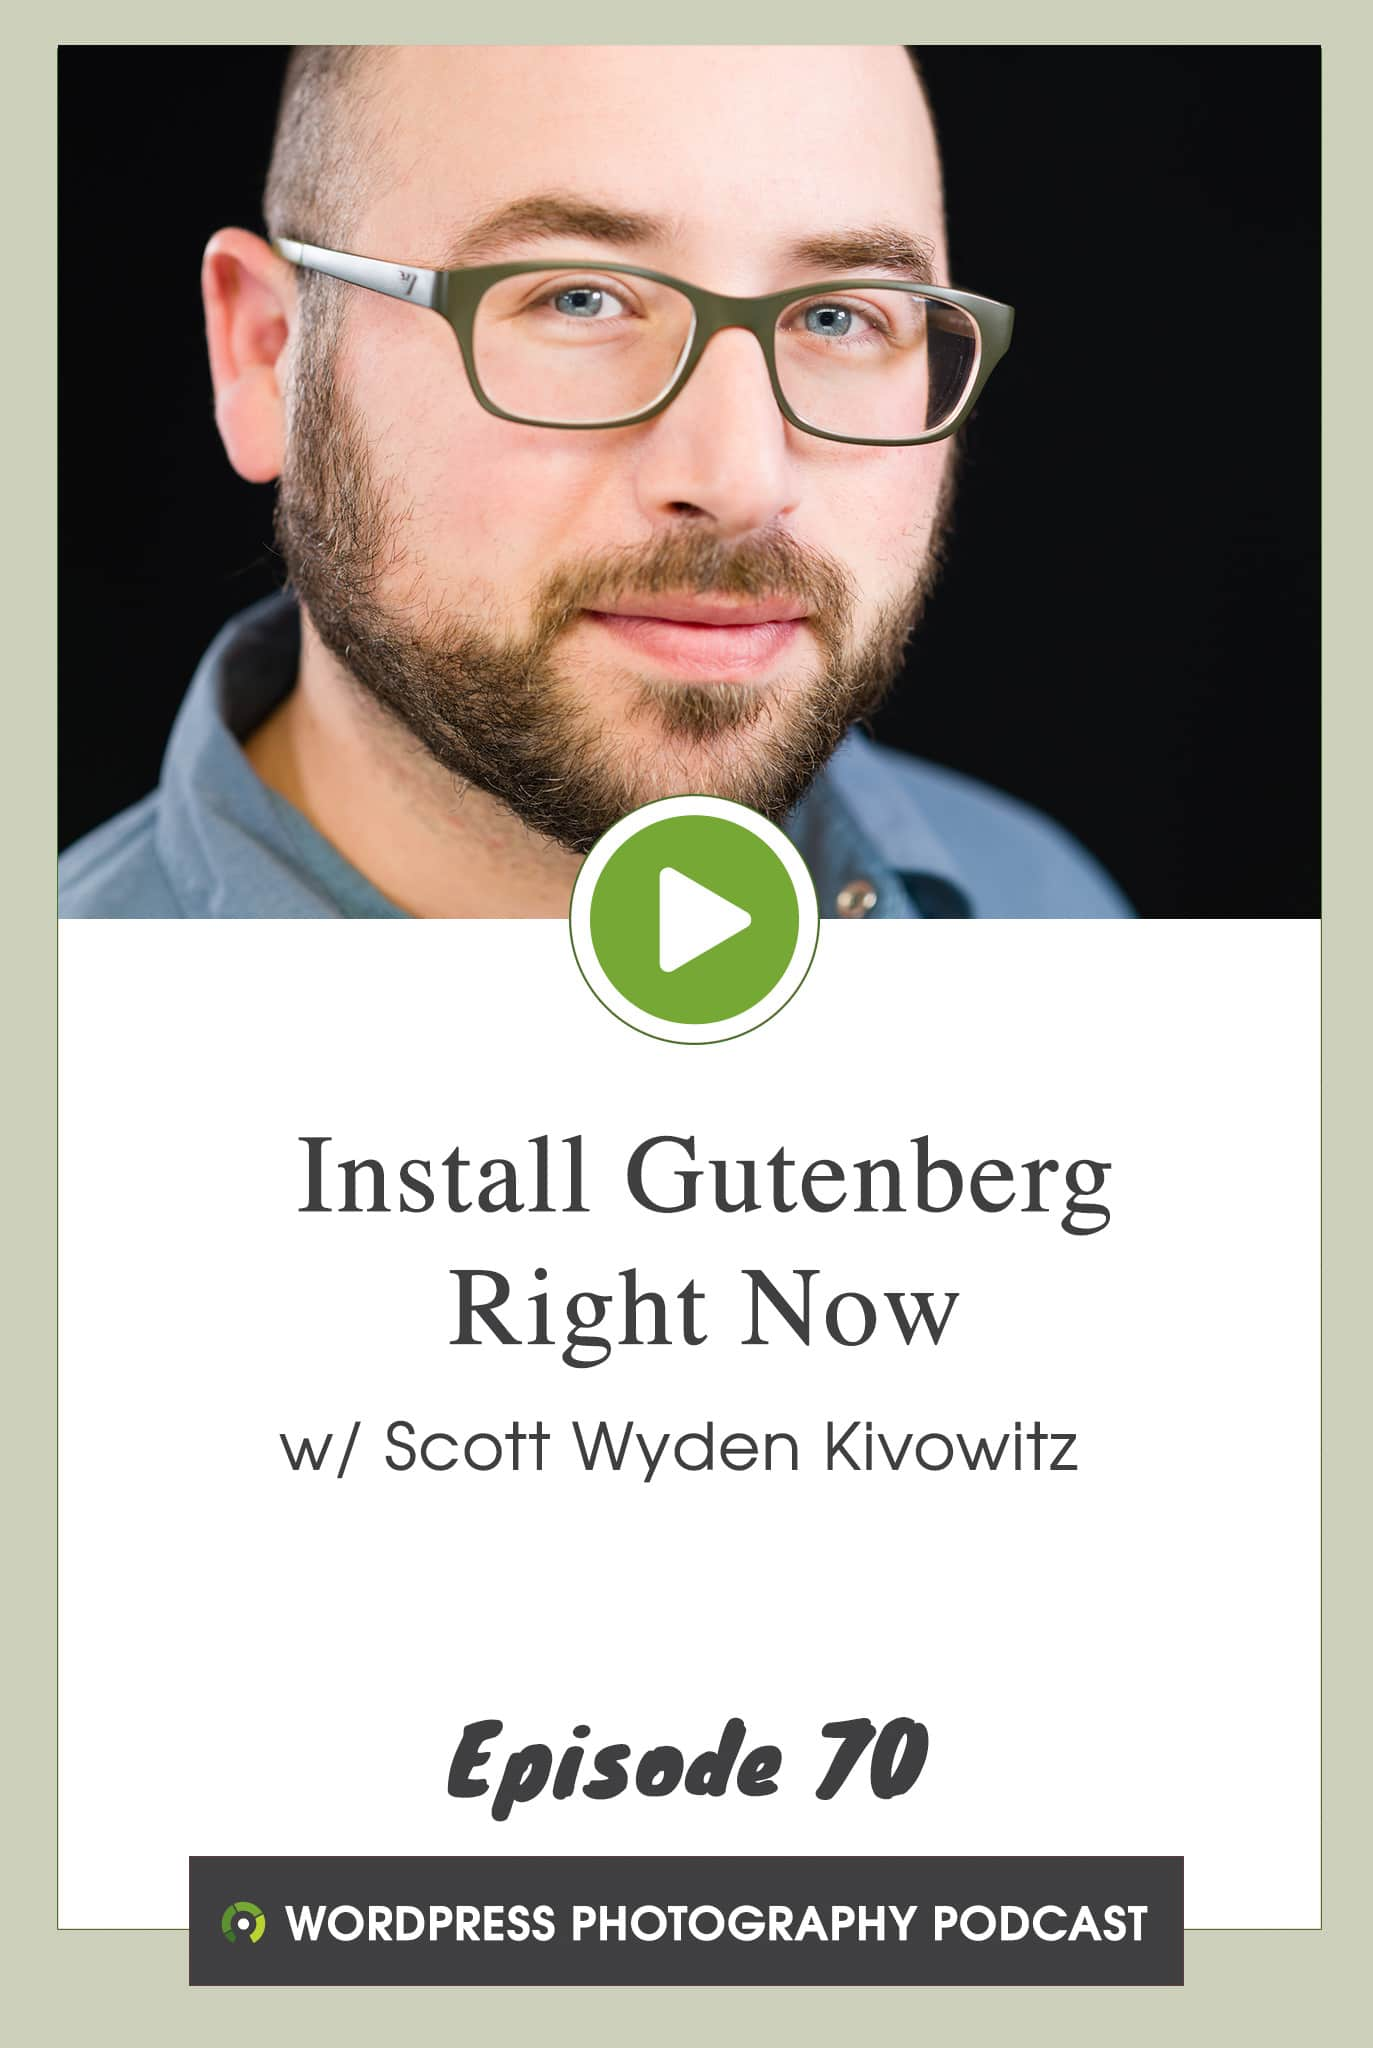 Episode 70 – Install Gutenberg Right Now